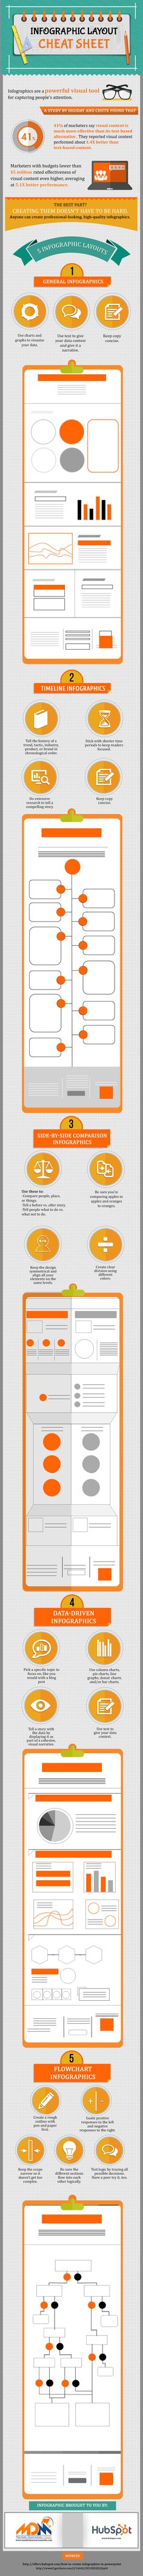 The Infographic Design Cheat Sheet: 5 Layouts That'll Make Your Life Easier [Free Templates], via @HubSpot